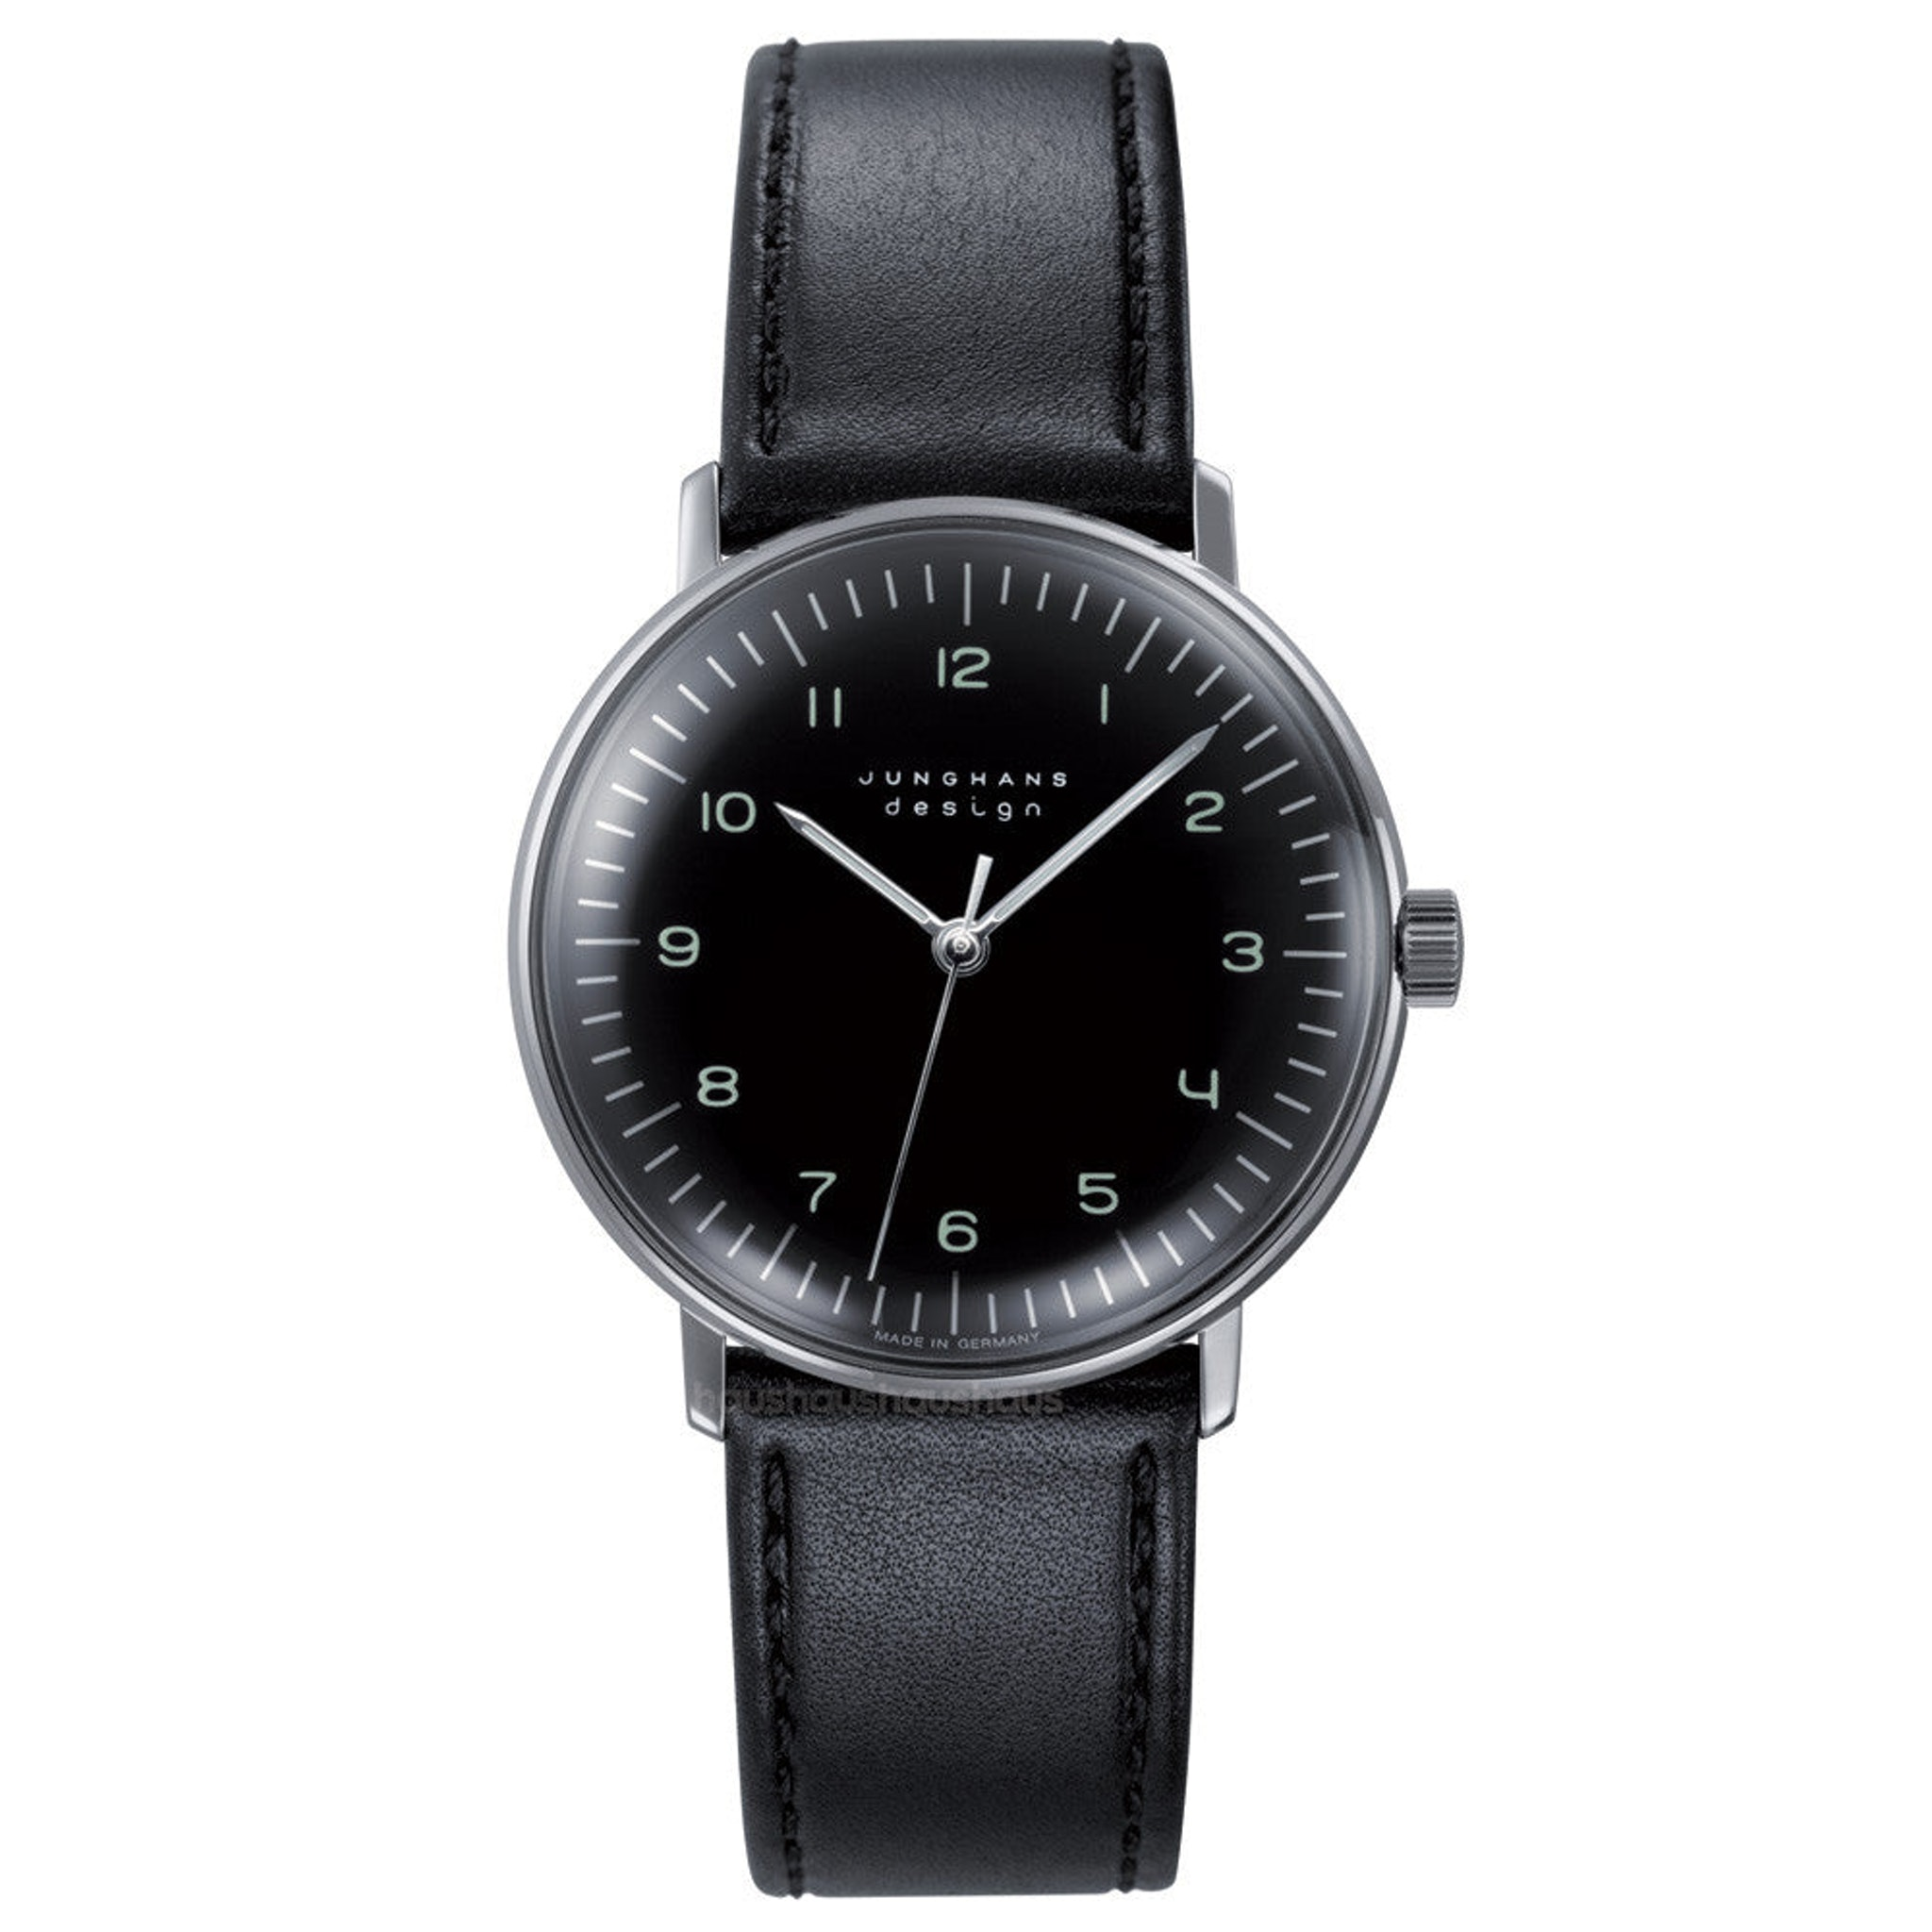 Max Bill 027/3702.00 Handwinding watch by Junghans